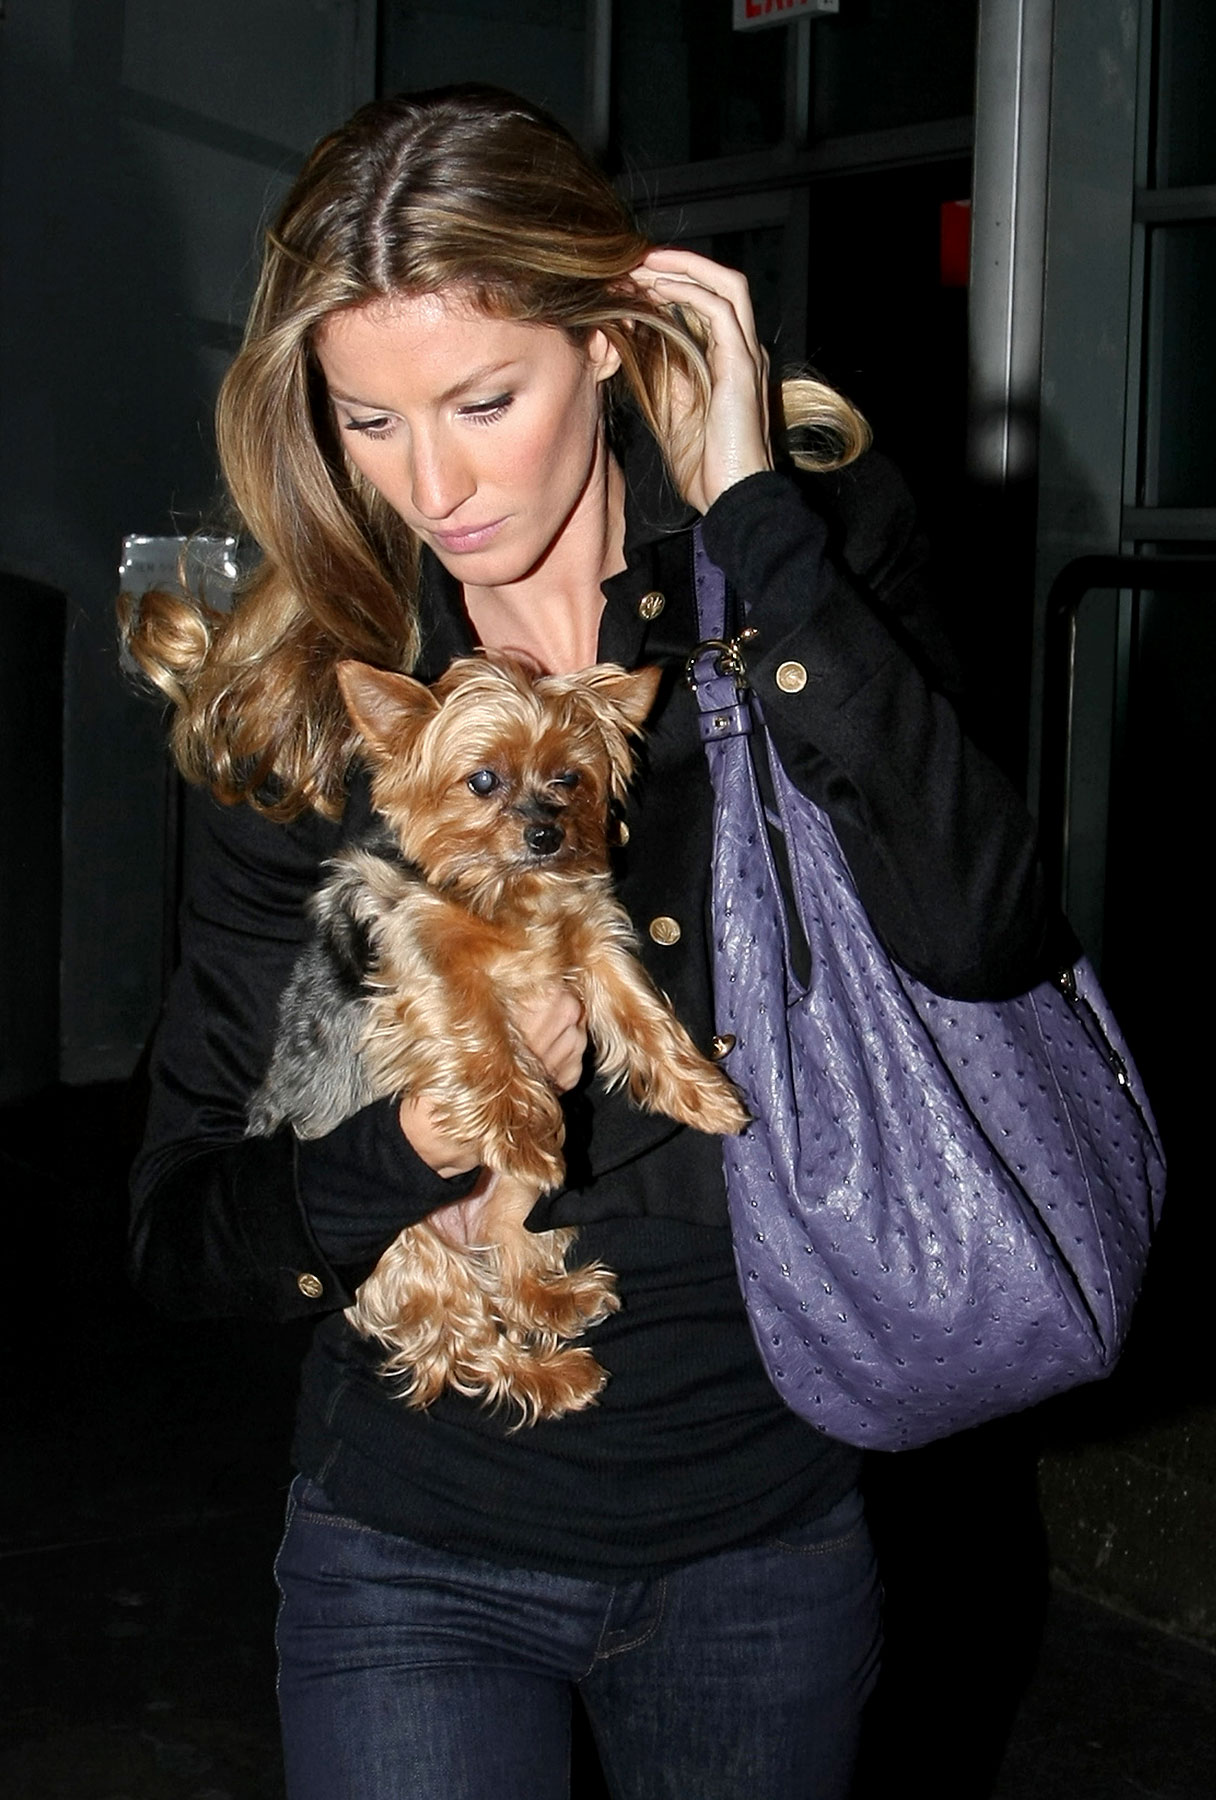 Gisele Bundchen—and Her Little Dog, Too